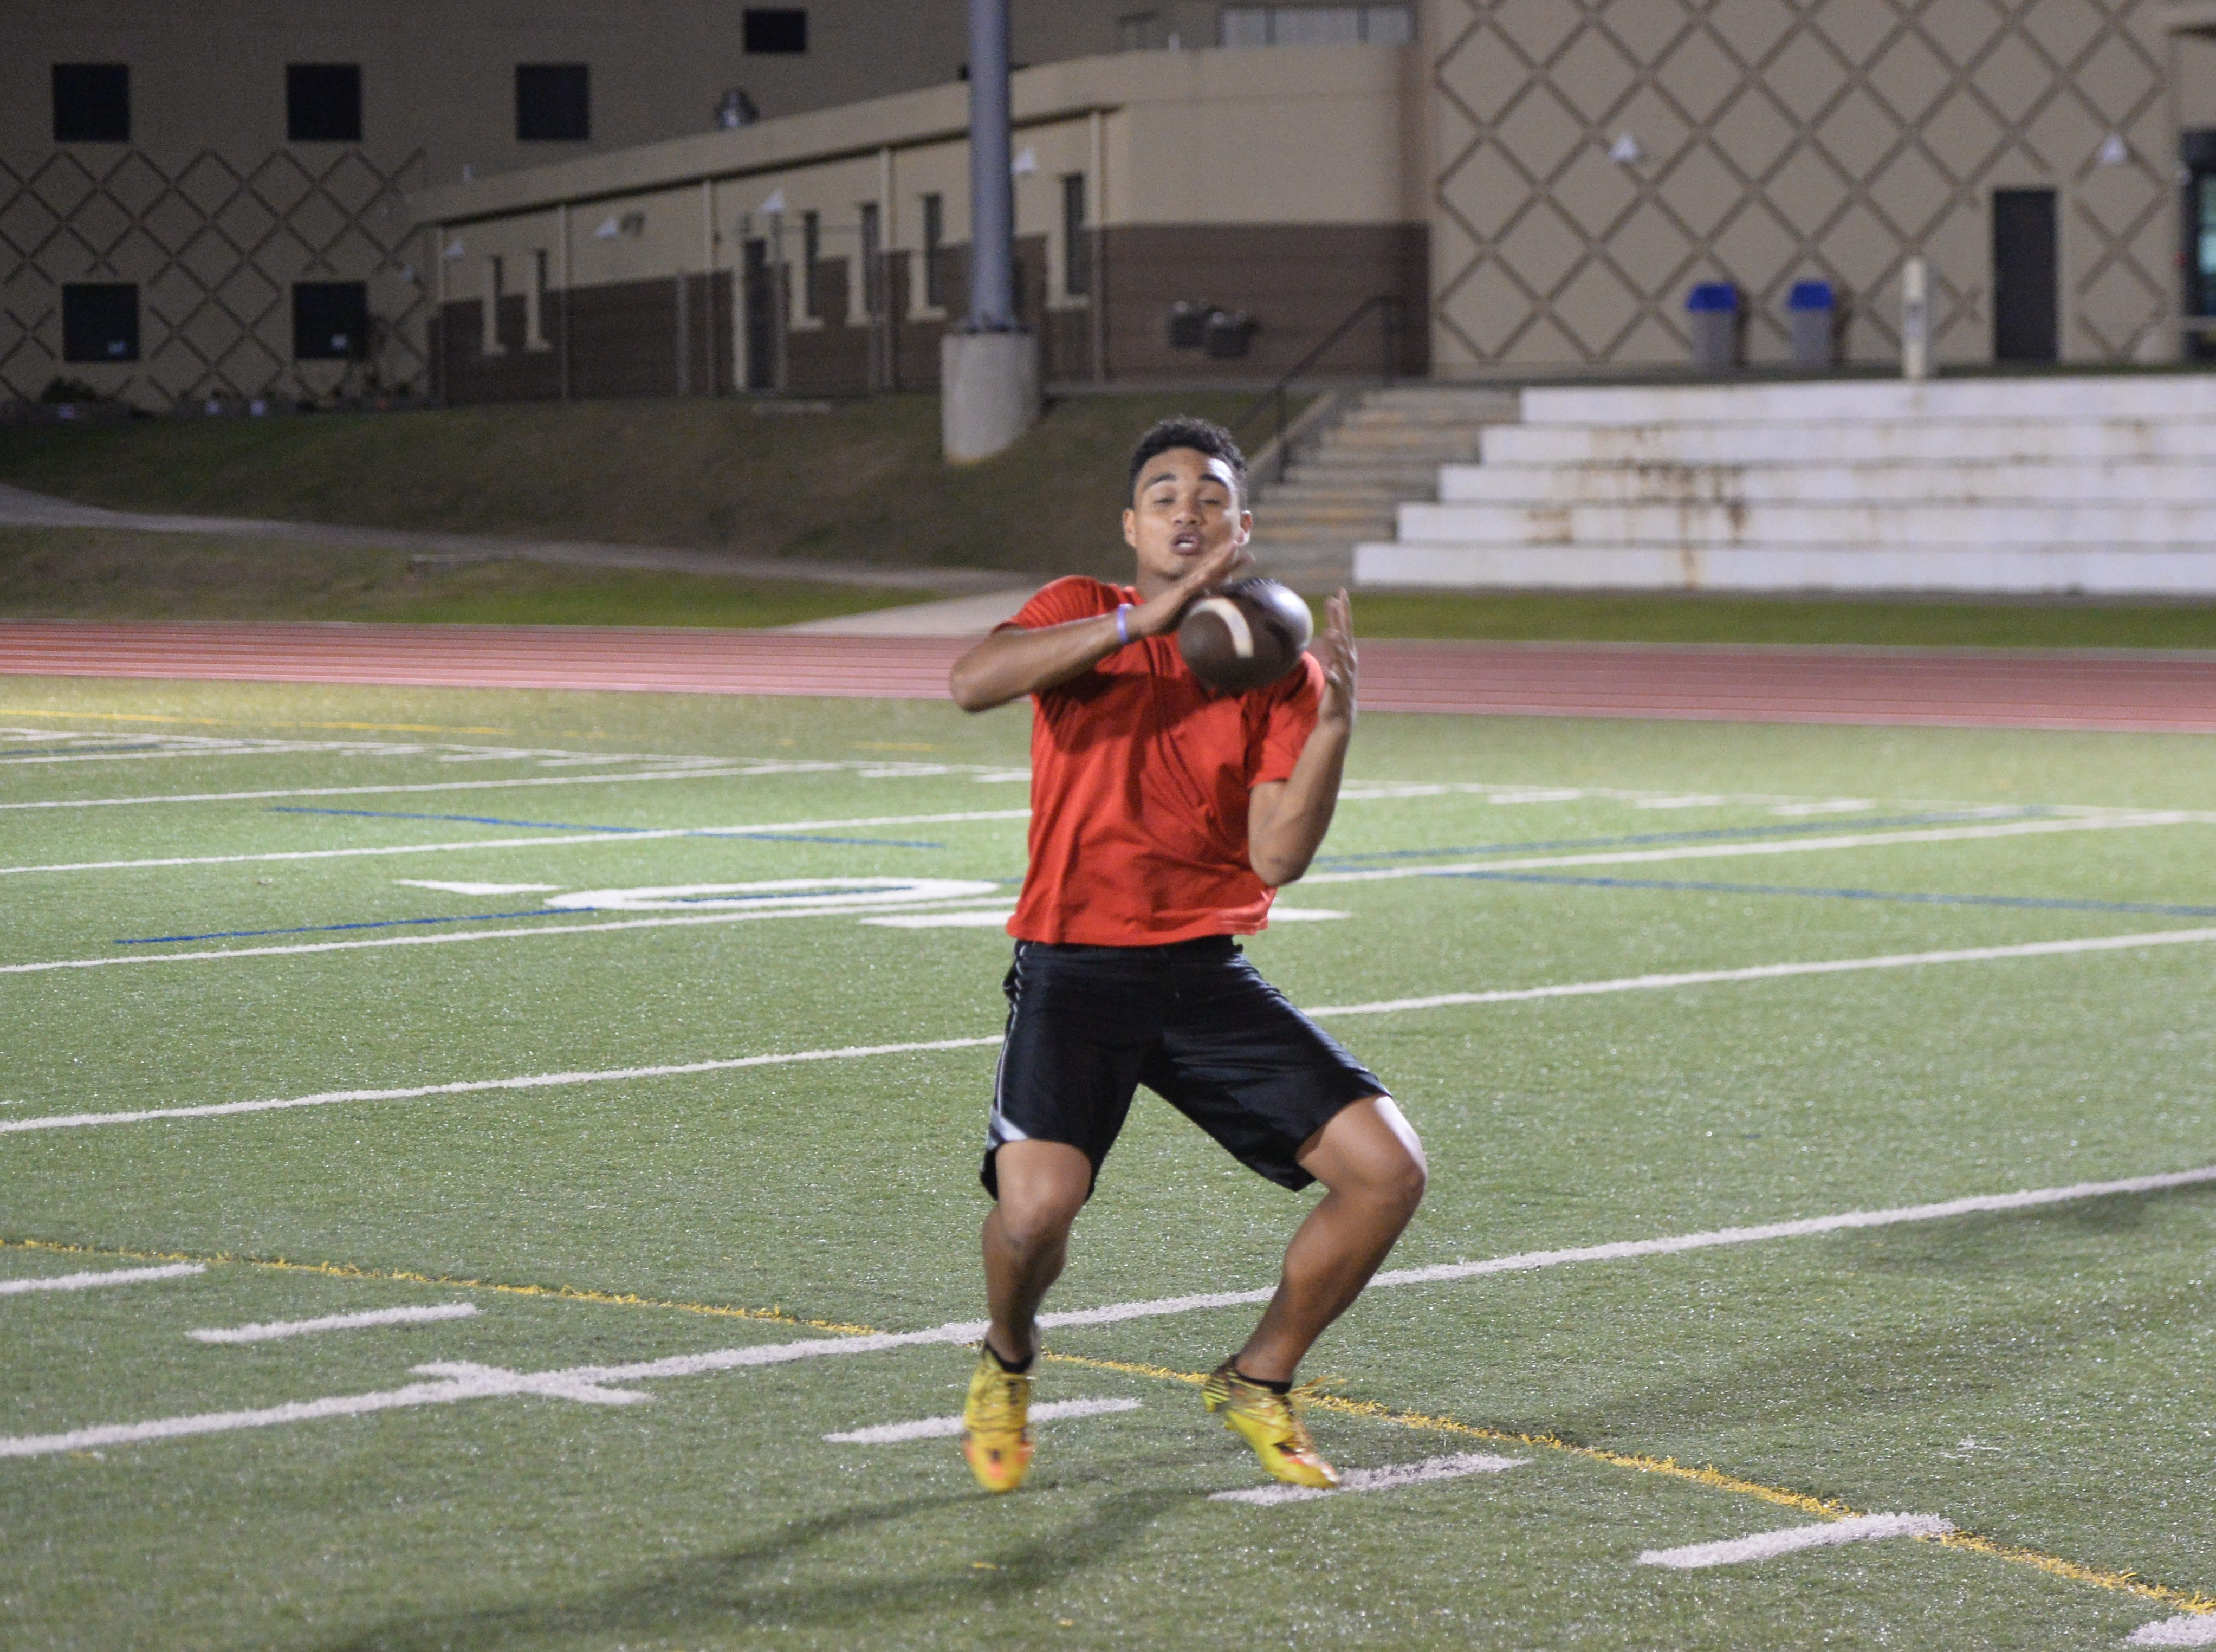 Lawrence Tisalona bobbles the ball but recovers in after catching a short pass Nov. 14 at the 2nd Annual Guam Football College Showcase and Combine.